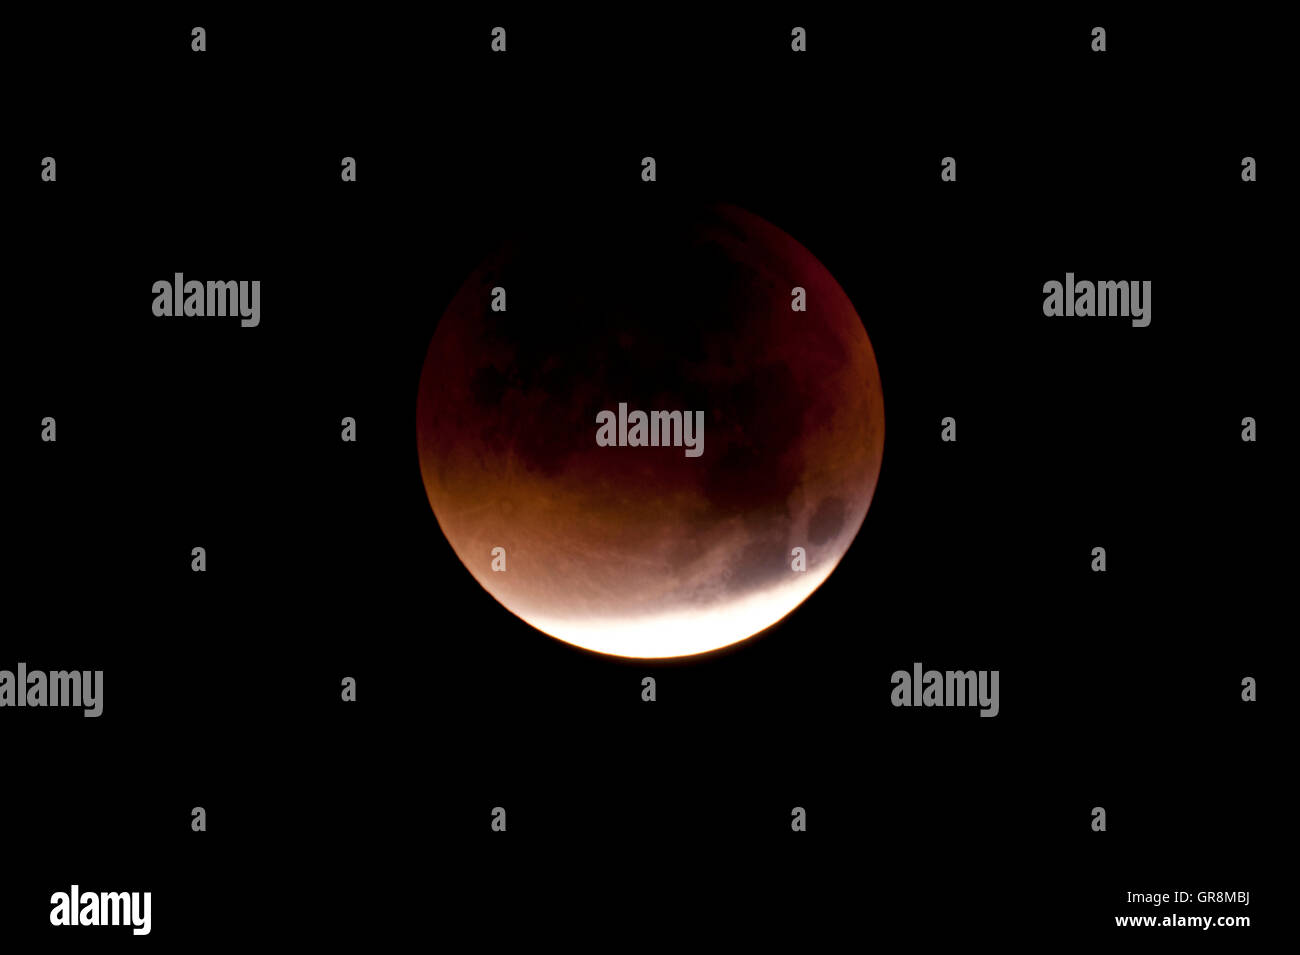 Total Lunar Eclipse On Sept. 28, 2015, Observed In Kiel, Germany, Through A Telescope - Stock Image